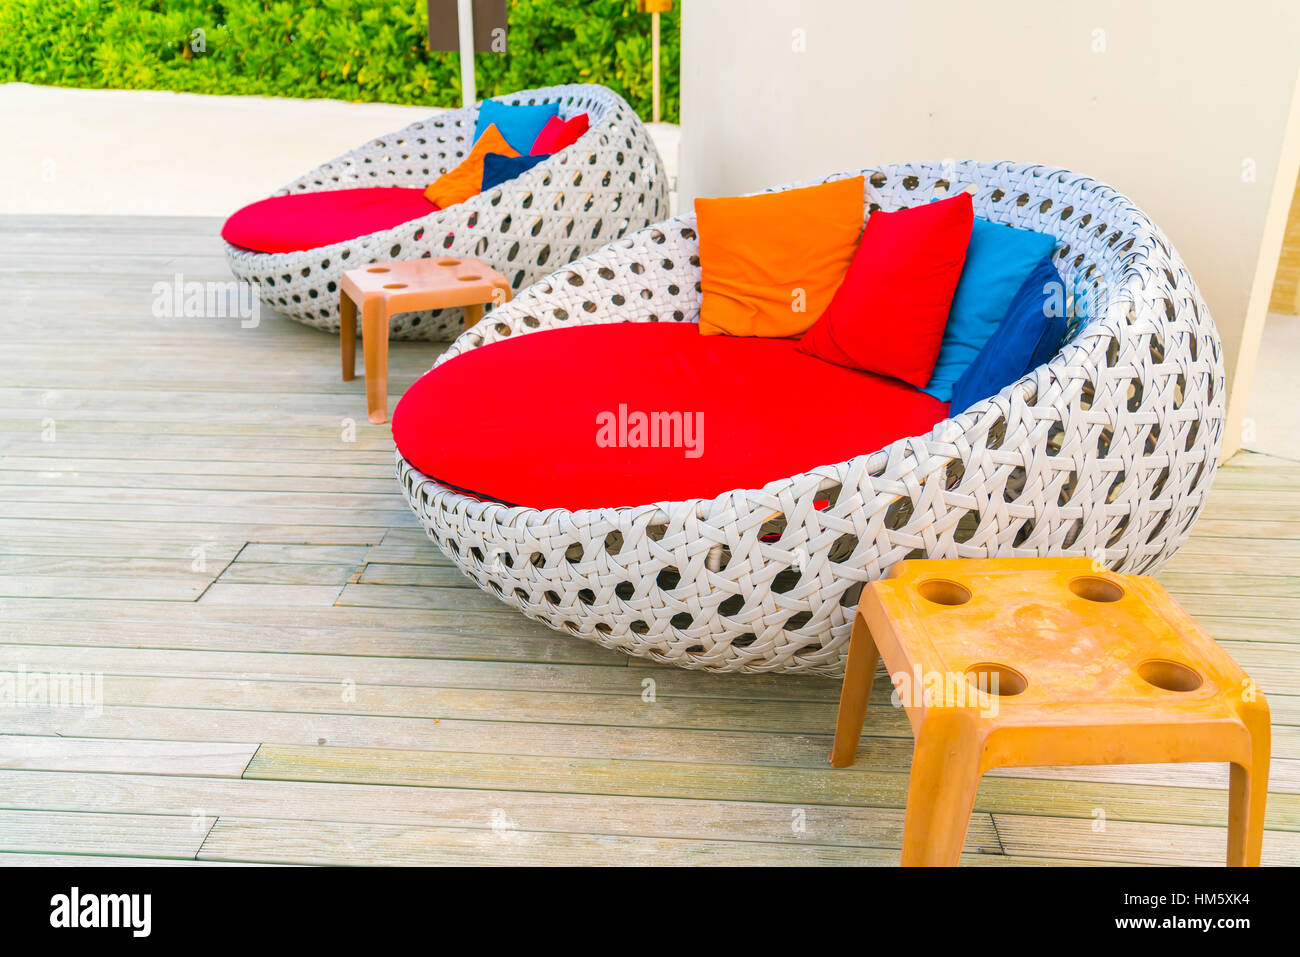 Relaxing seats at Swimming pool - Stock Image